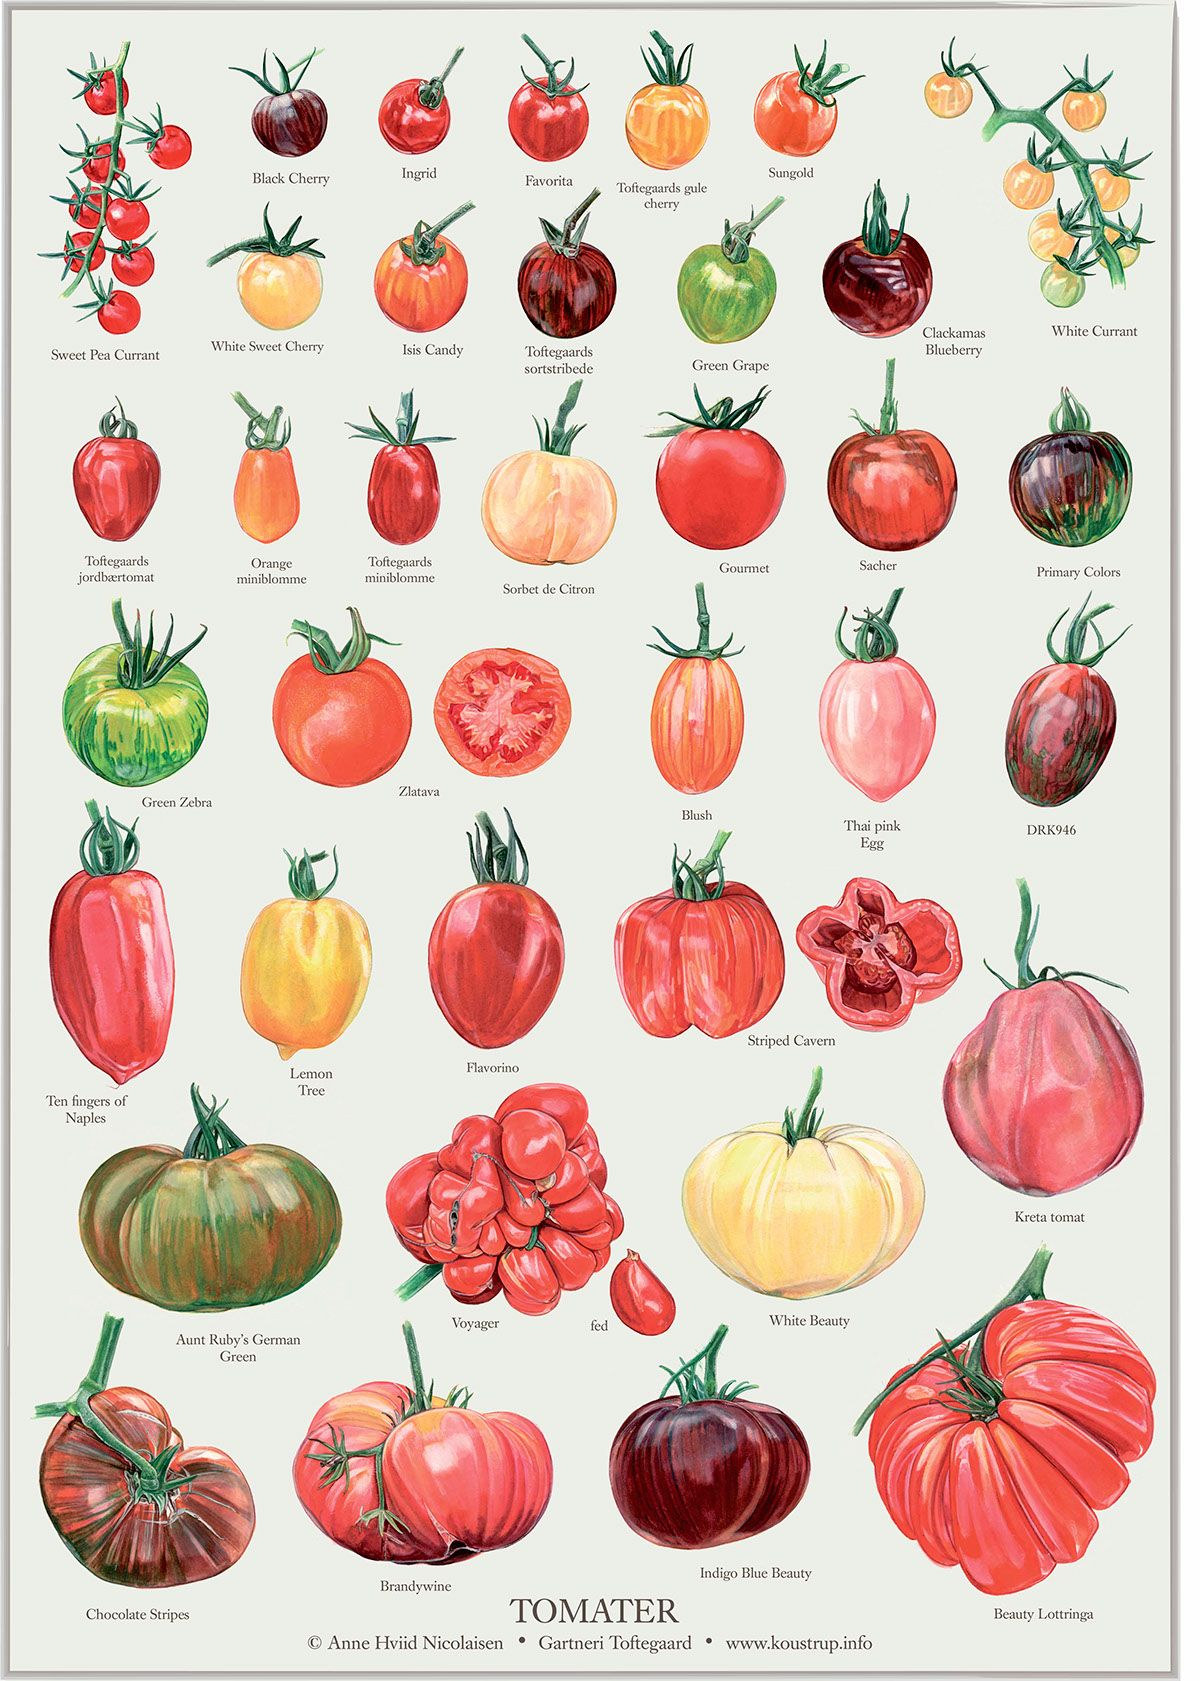 36 Different Kinds Of Tomatoes Illustrated To Be Used On